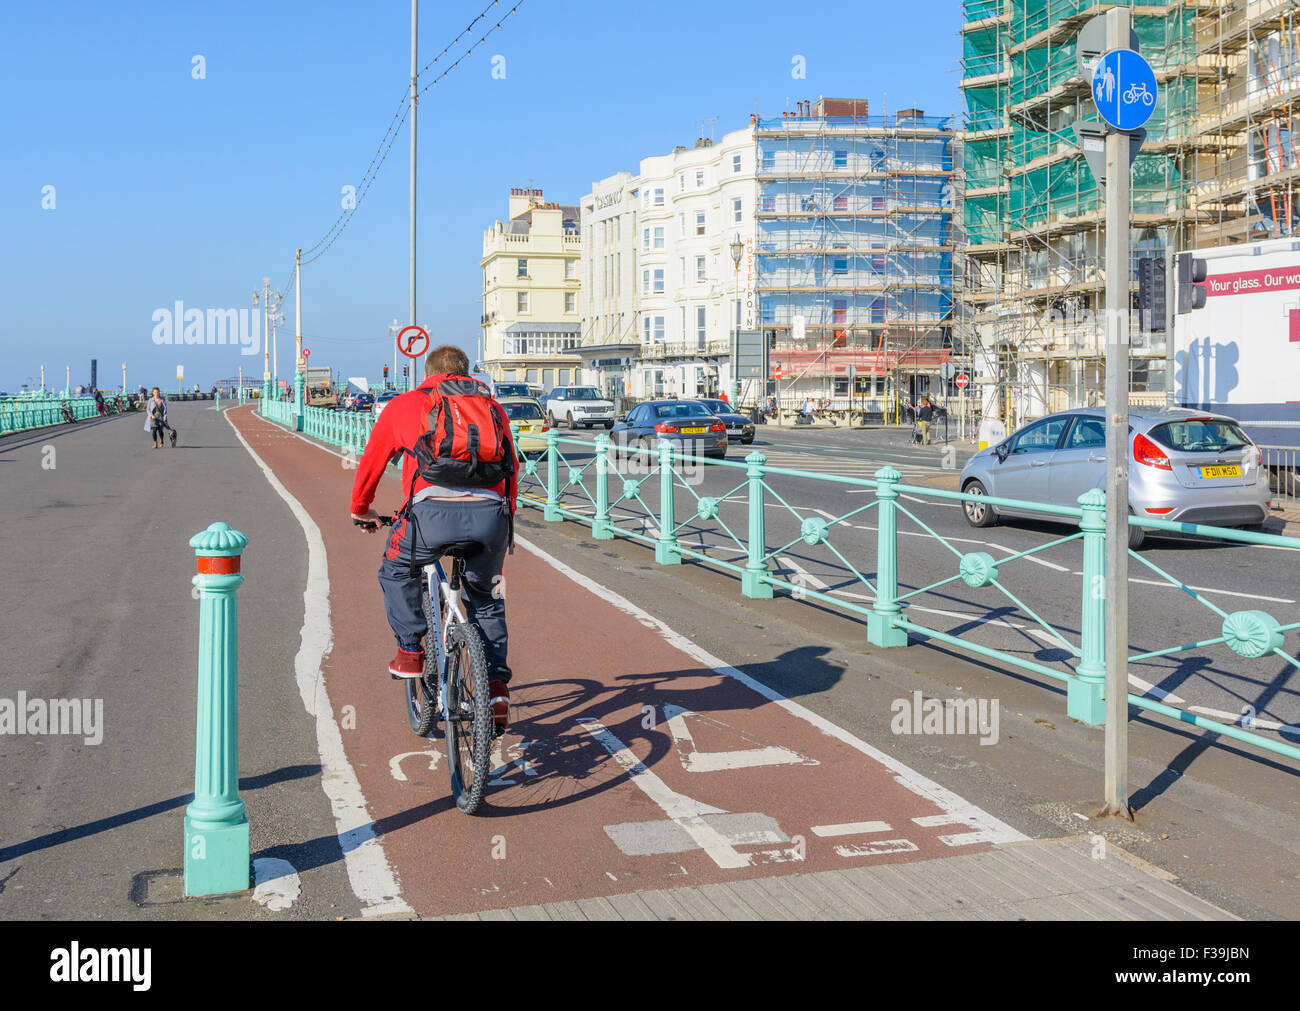 Cyclist on a cycle path in Brighton, East Sussex, England, UK. - Stock Image